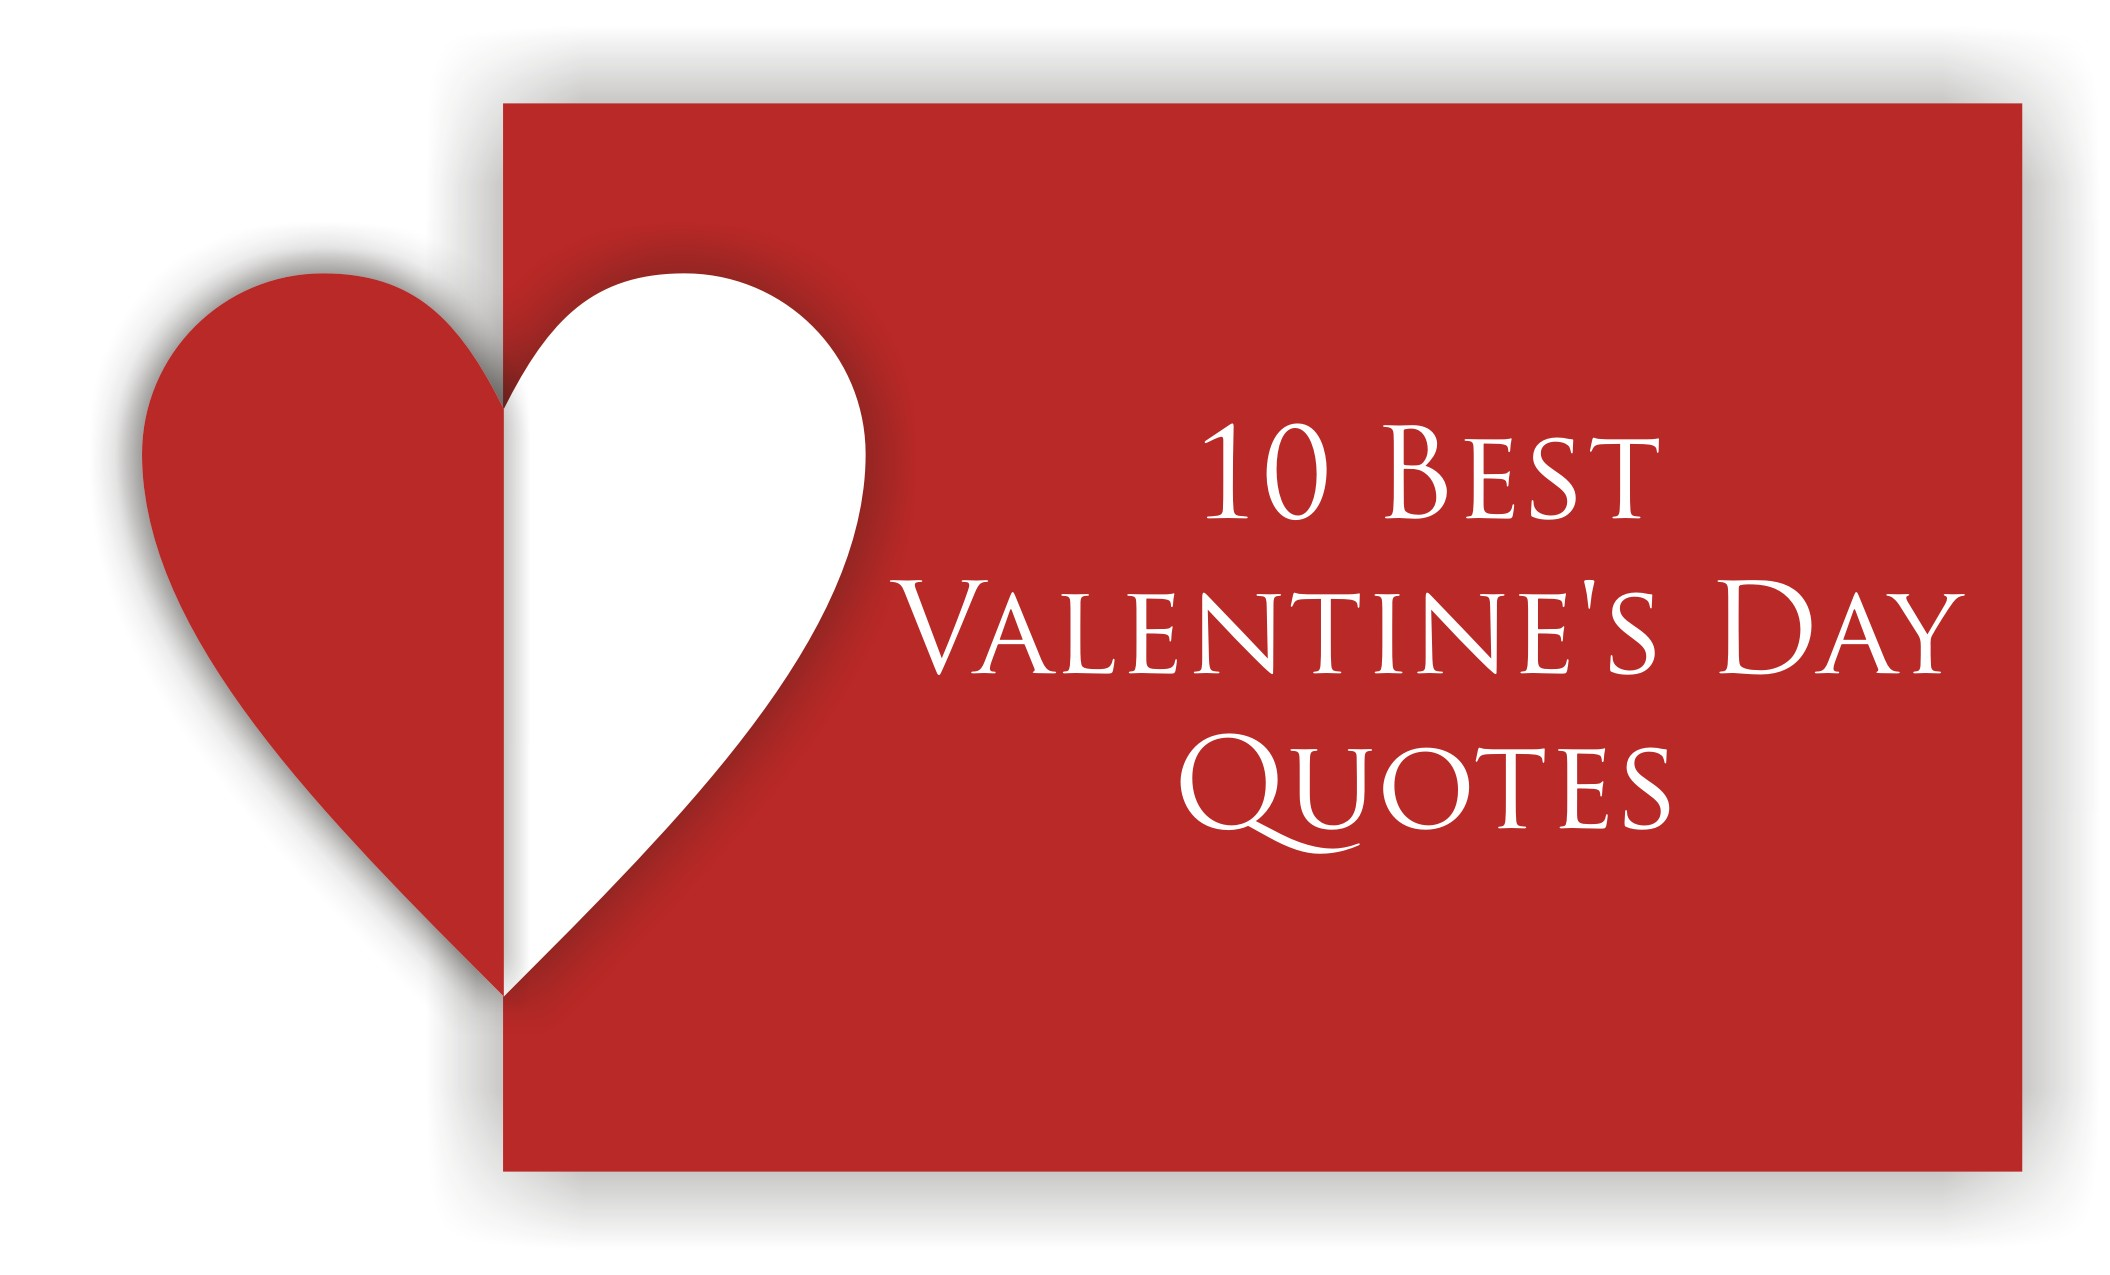 valentines day best quotes quotesgram